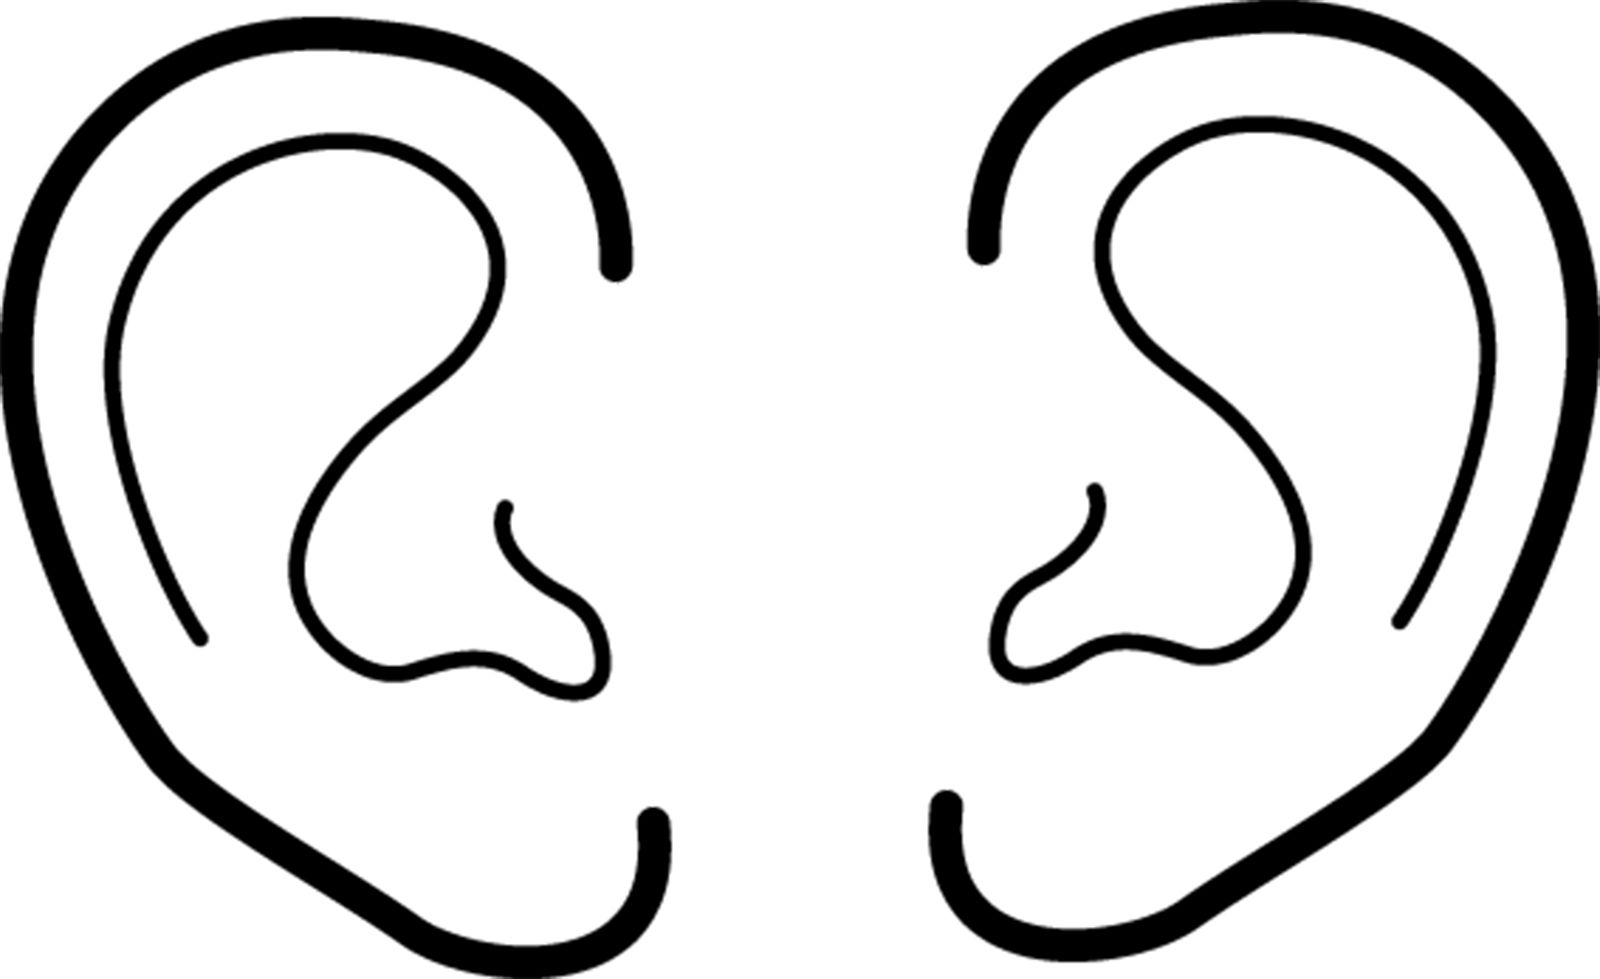 Choose Right 2012 Outline Sharing Time Ears 814115 Print Jpg 1 600 979 Pixels Ear Picture Ear Art Coloring Pages